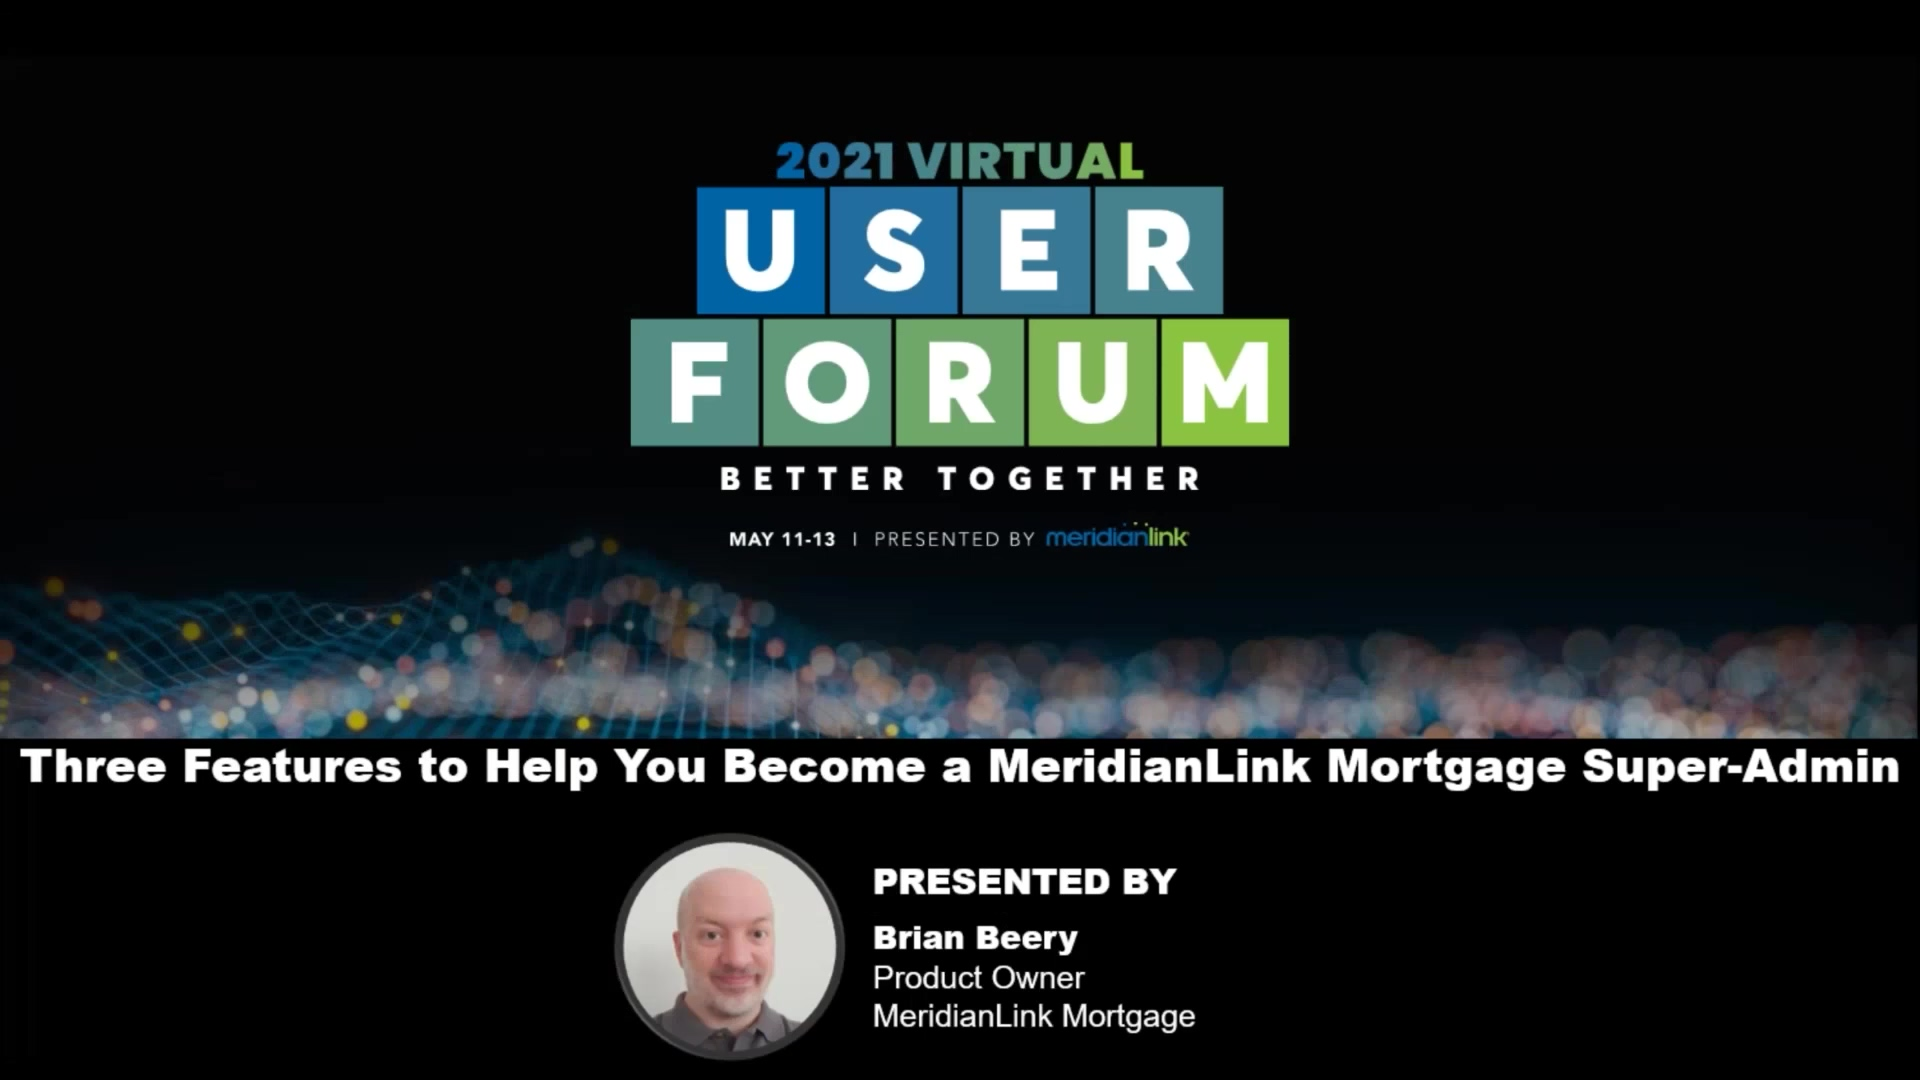 Three Features to Help You Become a MeridianLink Mortgage Super Admin